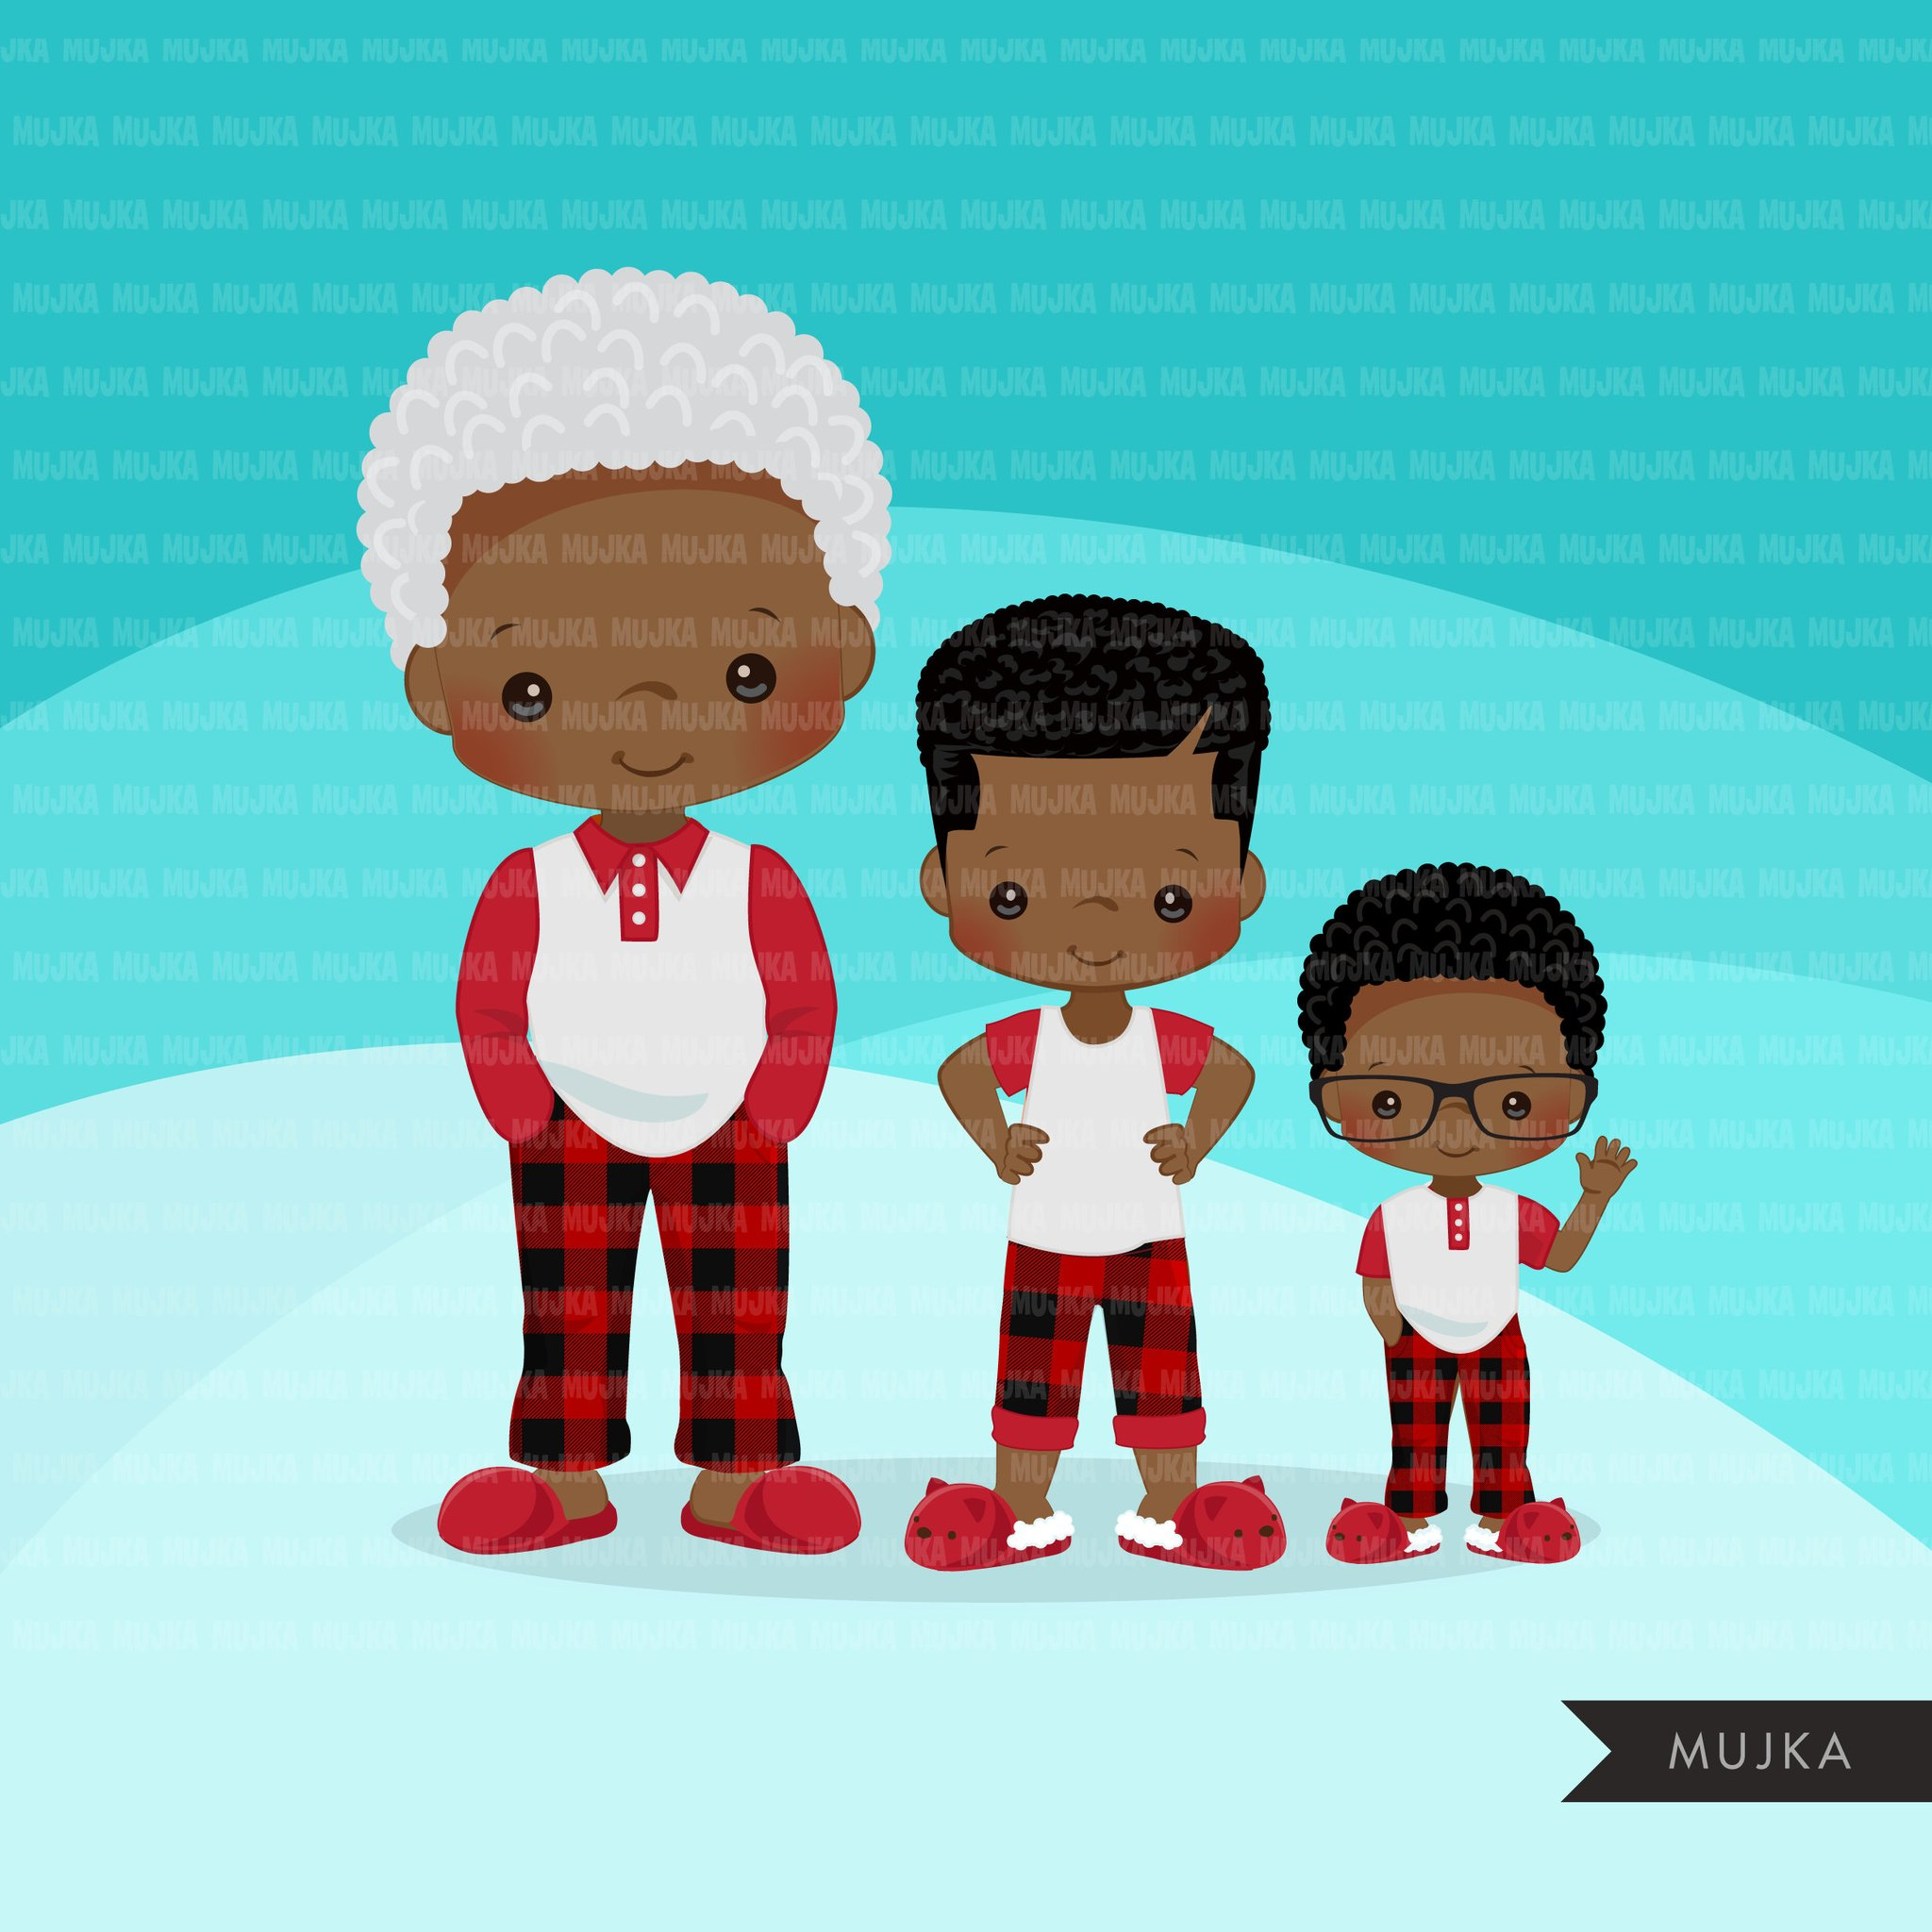 Christmas Pajama Black family clipart, portraits, mom, dad, grandparents,  baby, kids afro family graphics, plaid commercial use PNG.